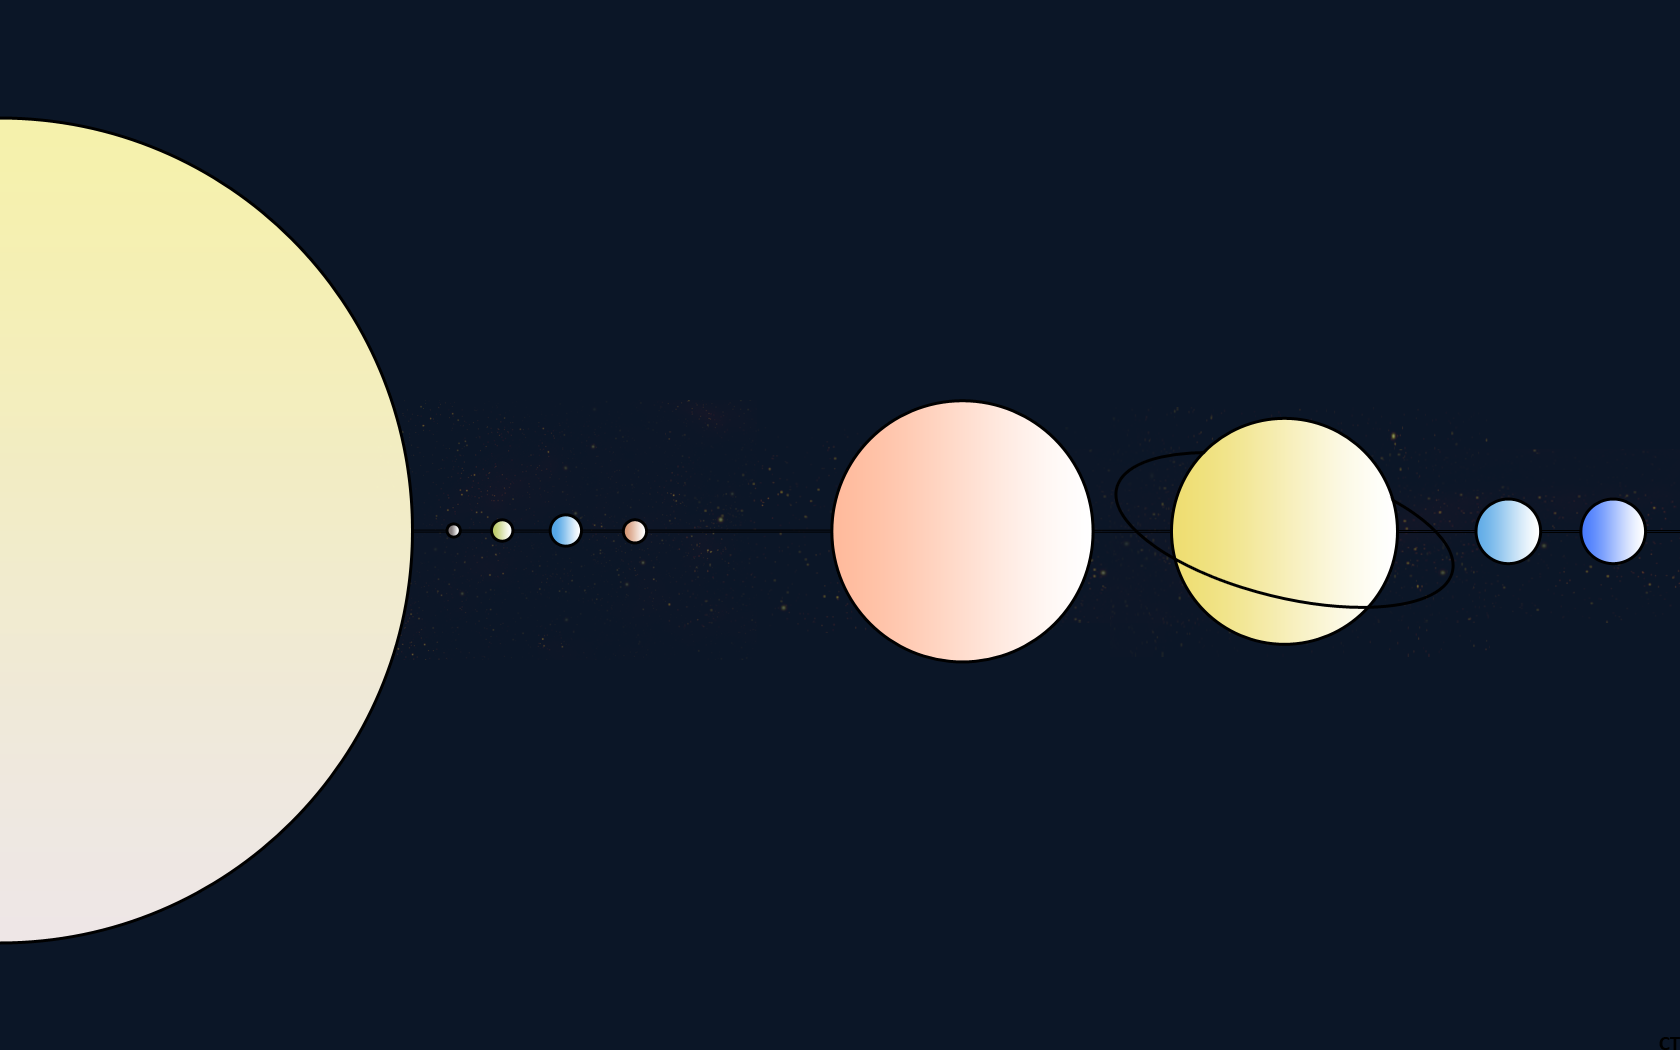 solar system wallpaper planets - photo #28